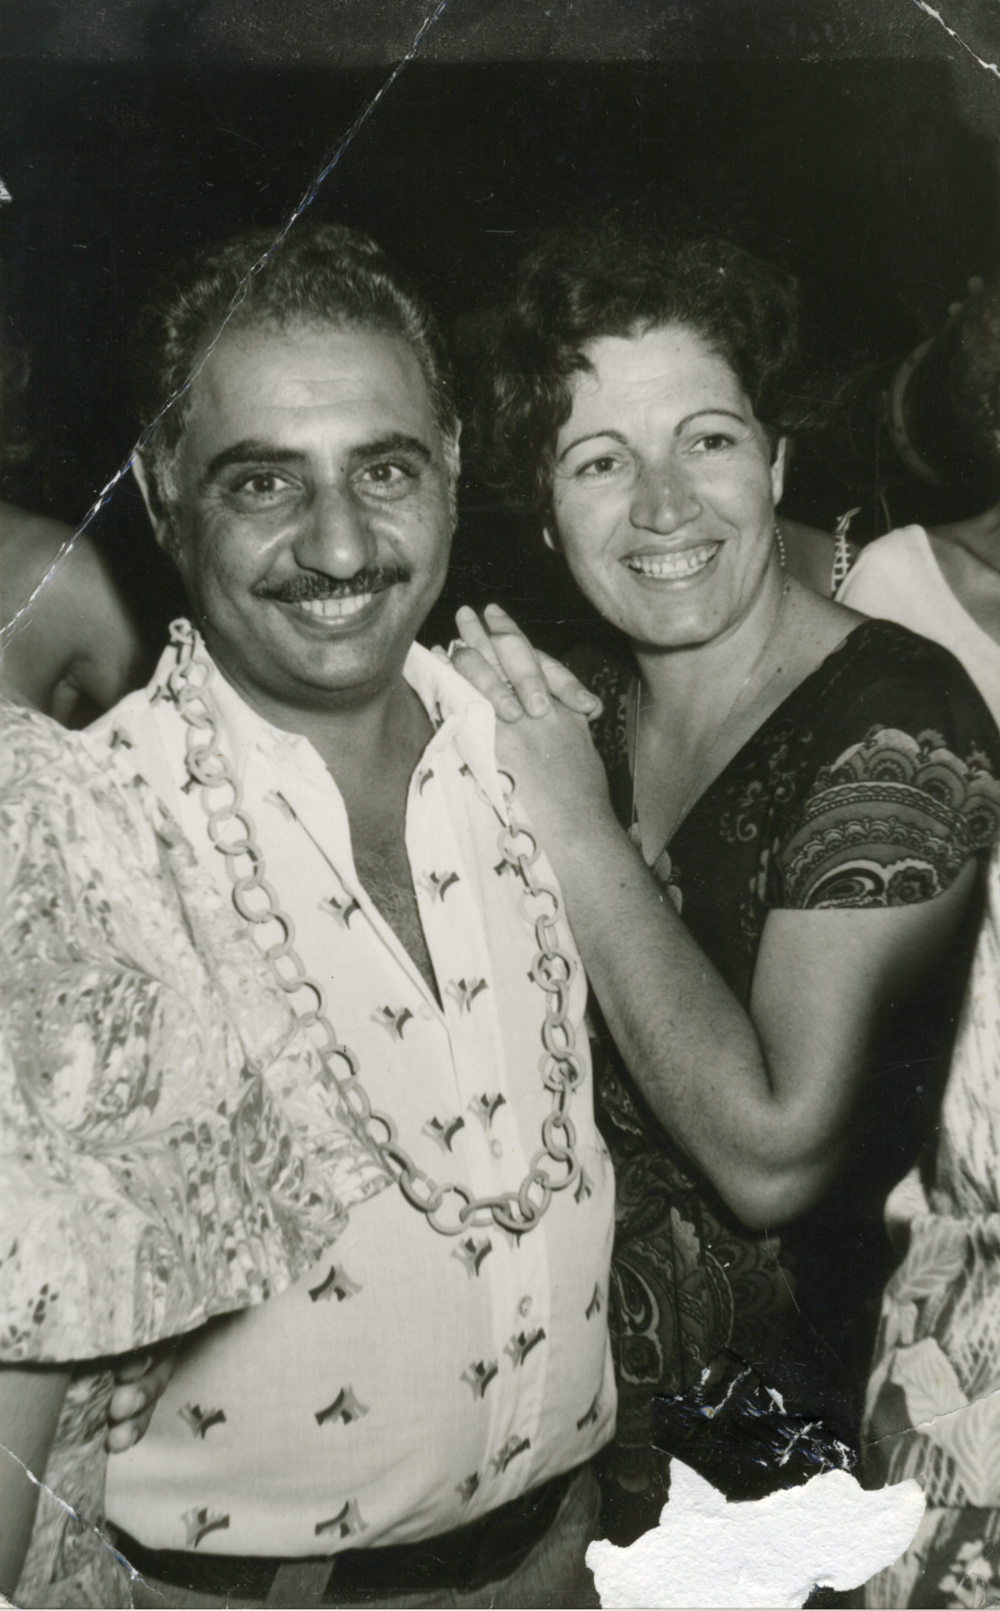 Einat's parents, Ziona and Menashe Admony, at a celebration in Giva'tayim, Israel in the early 1970's.